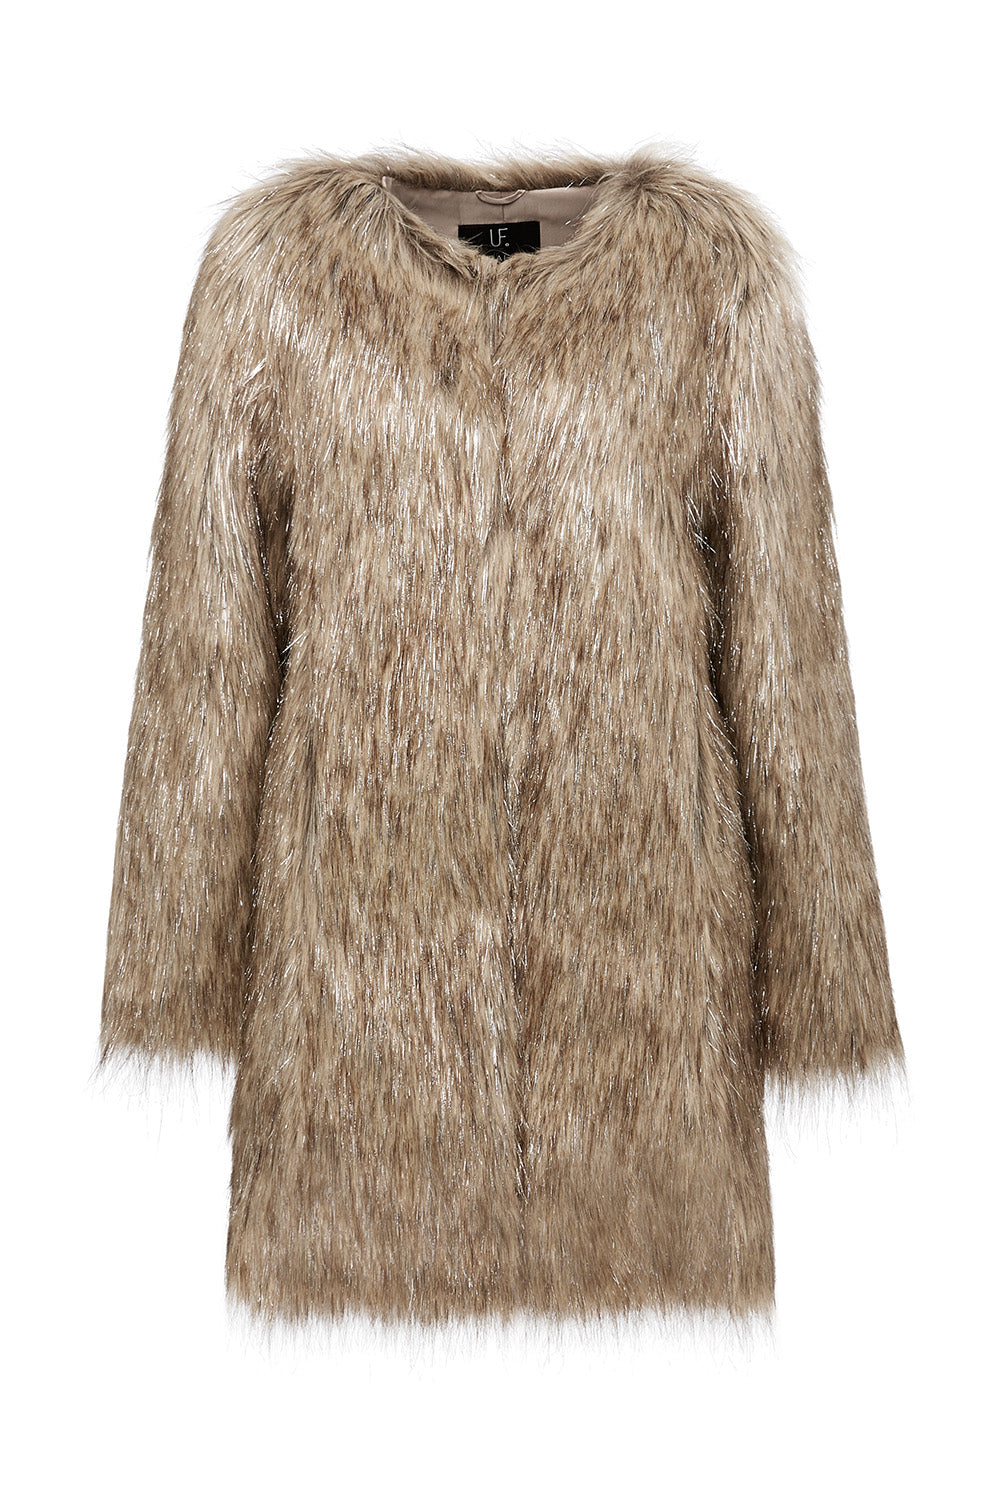 Wanderlust Coat in Natural Metallic